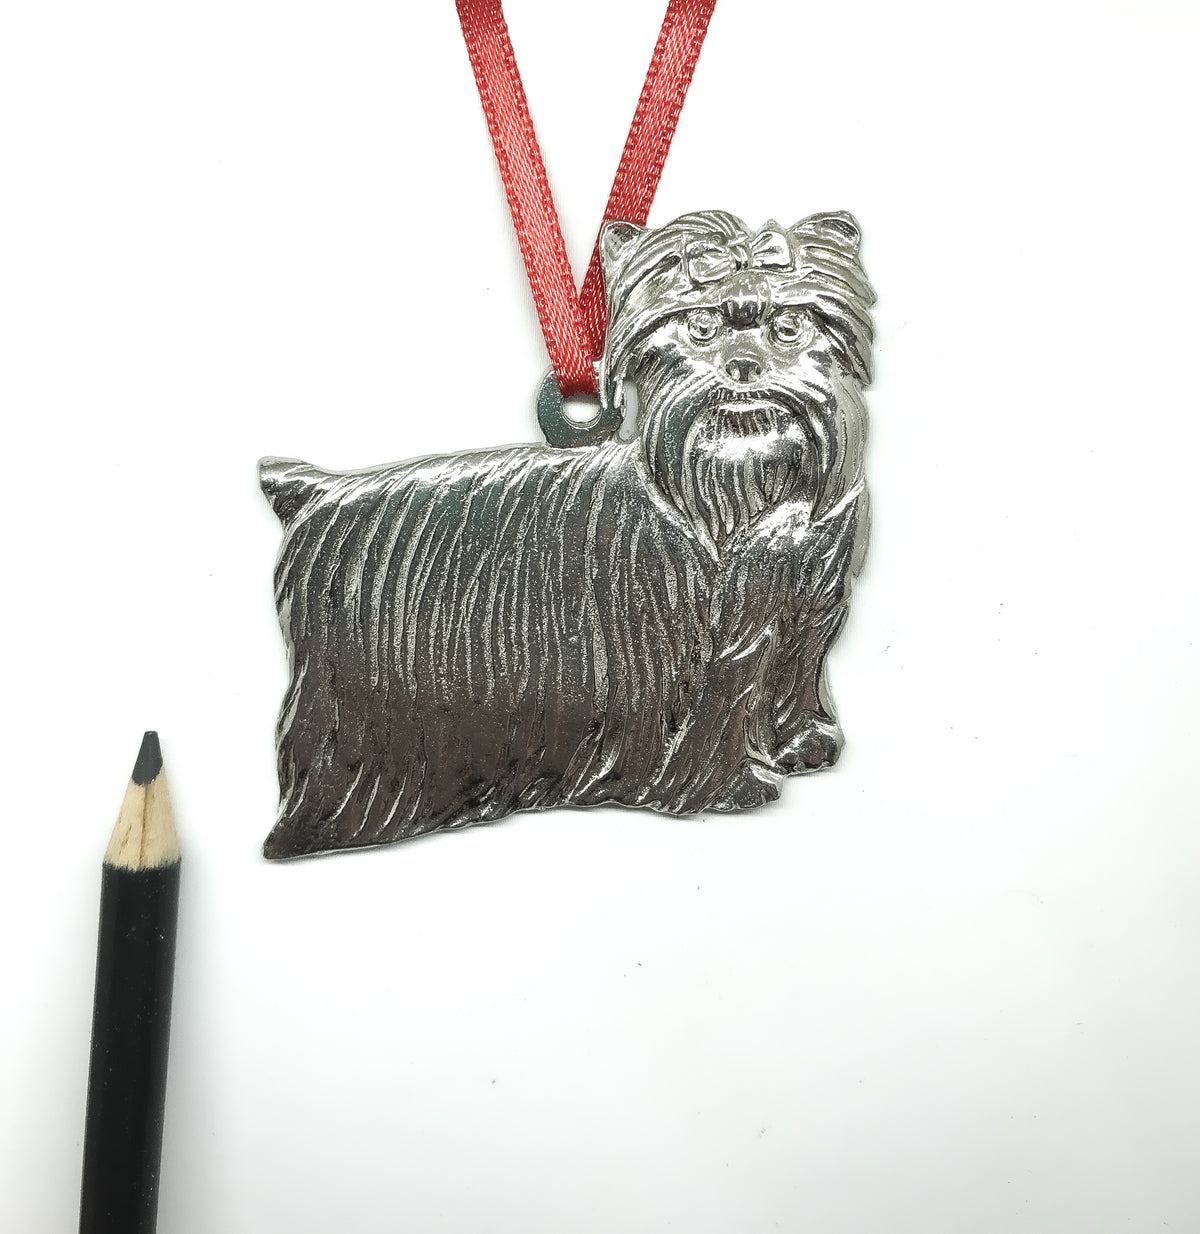 USA Handcrafted Yorkie Dog Memorial Holiday Keepsake Christmas Ornament Pewter